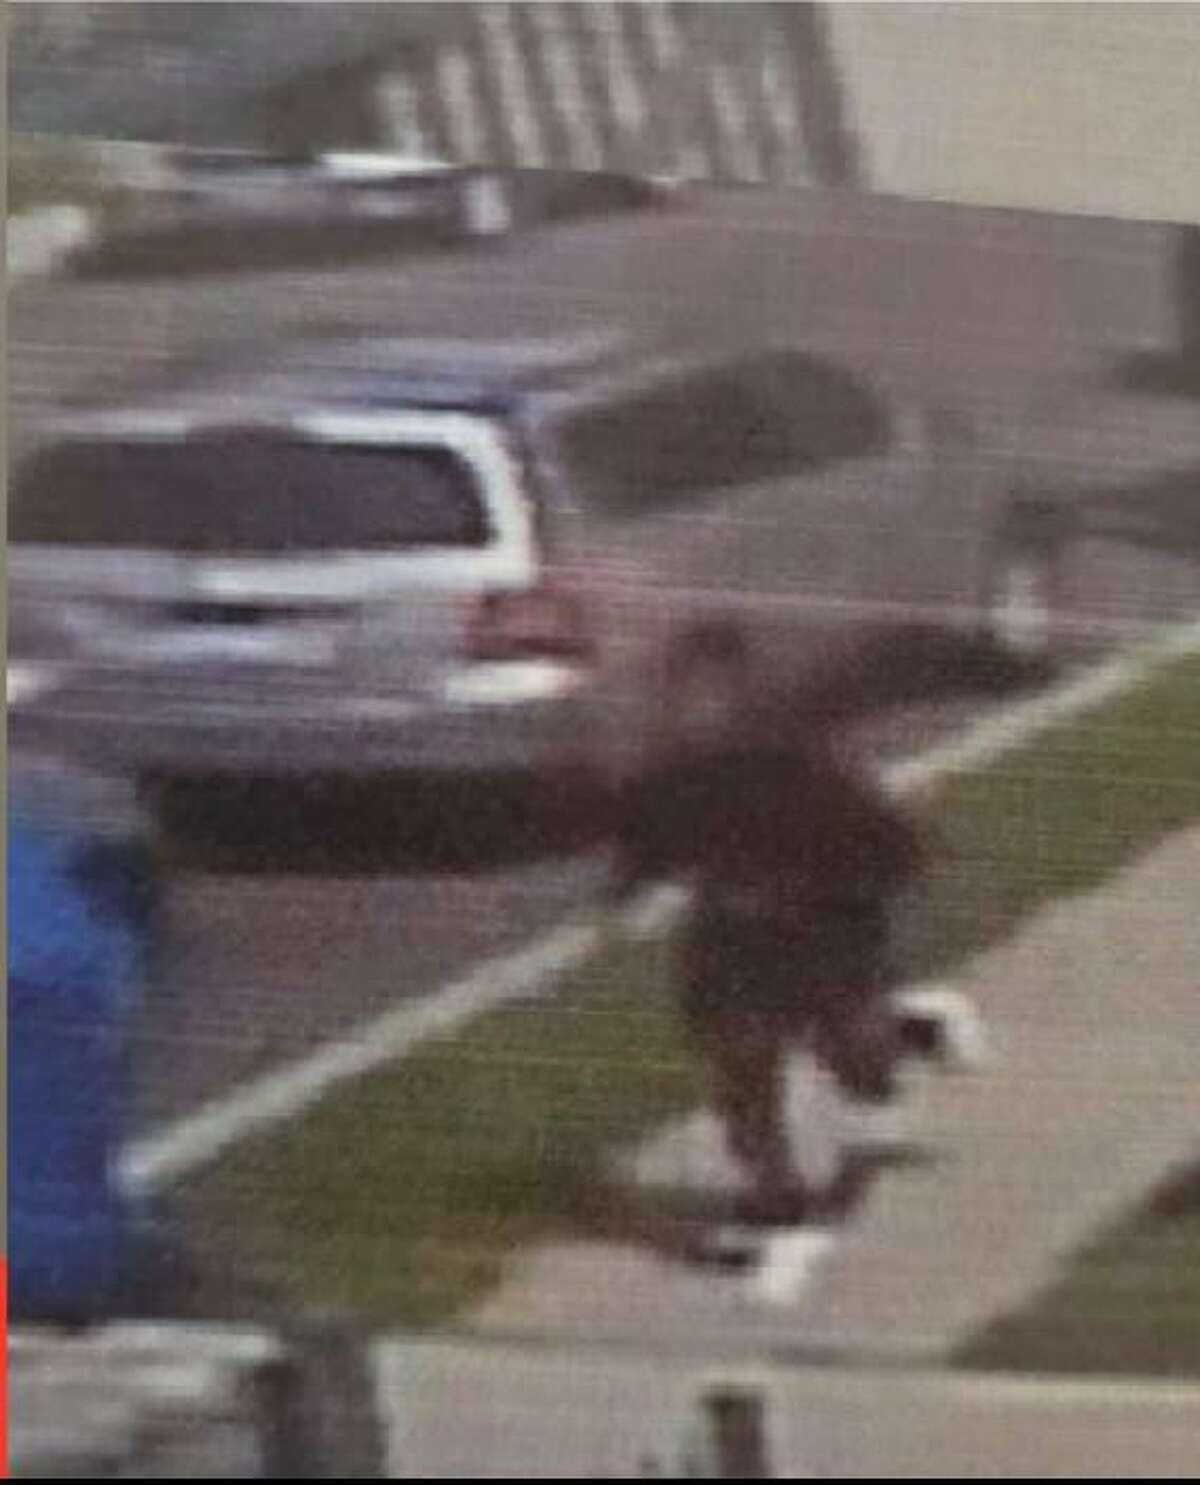 NORWALK, Conn. - Police released this image from a surveillance camera in a stabbing incident that occurred at Norwalk Hospital on June 5, 2021.